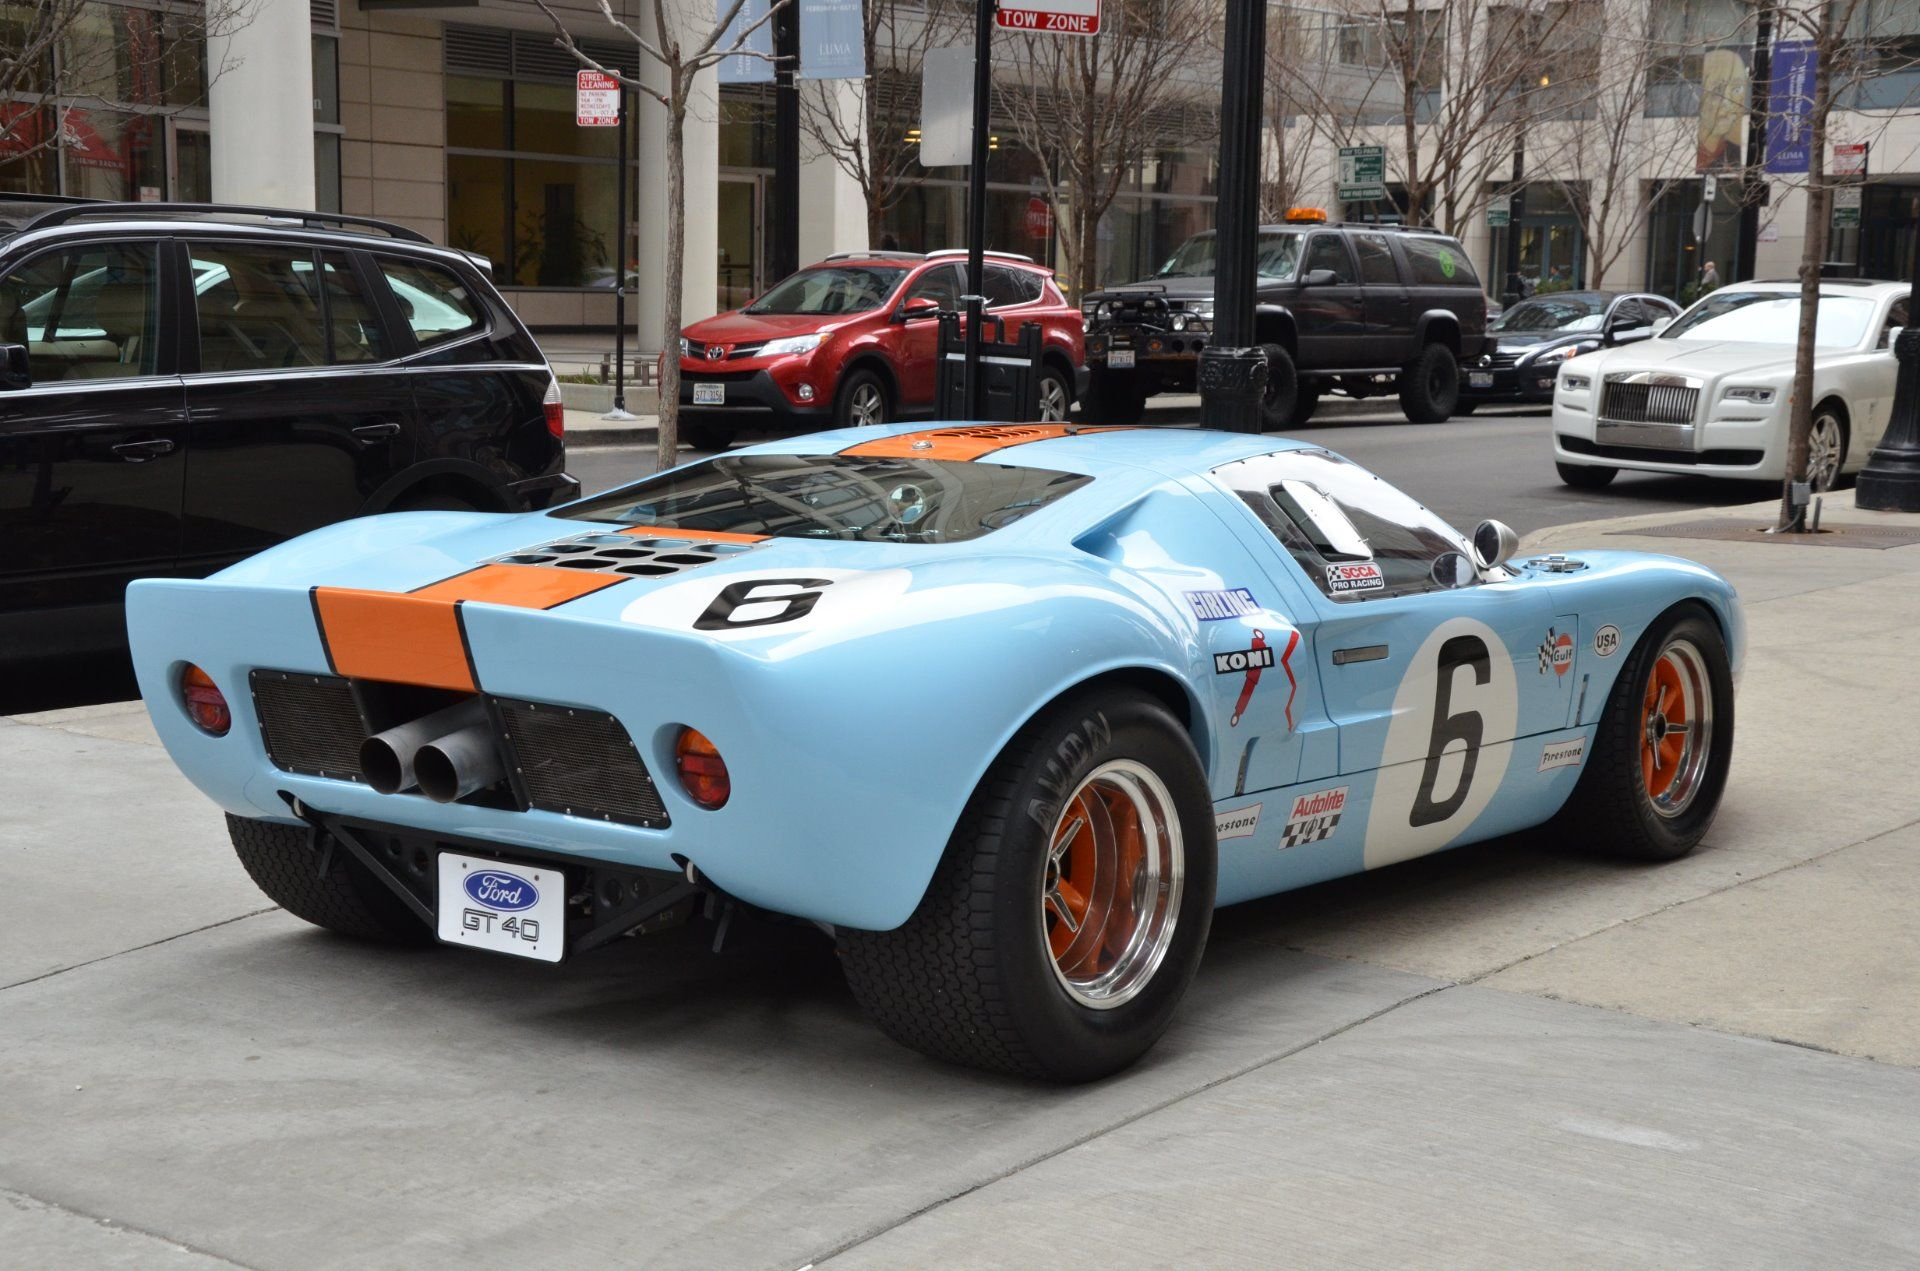 1968 Ford Gt40 For Sale Lutz Fl Oldcaronline Com Classifieds Classic Cars Trucks Ford Gt40 Ford Gt